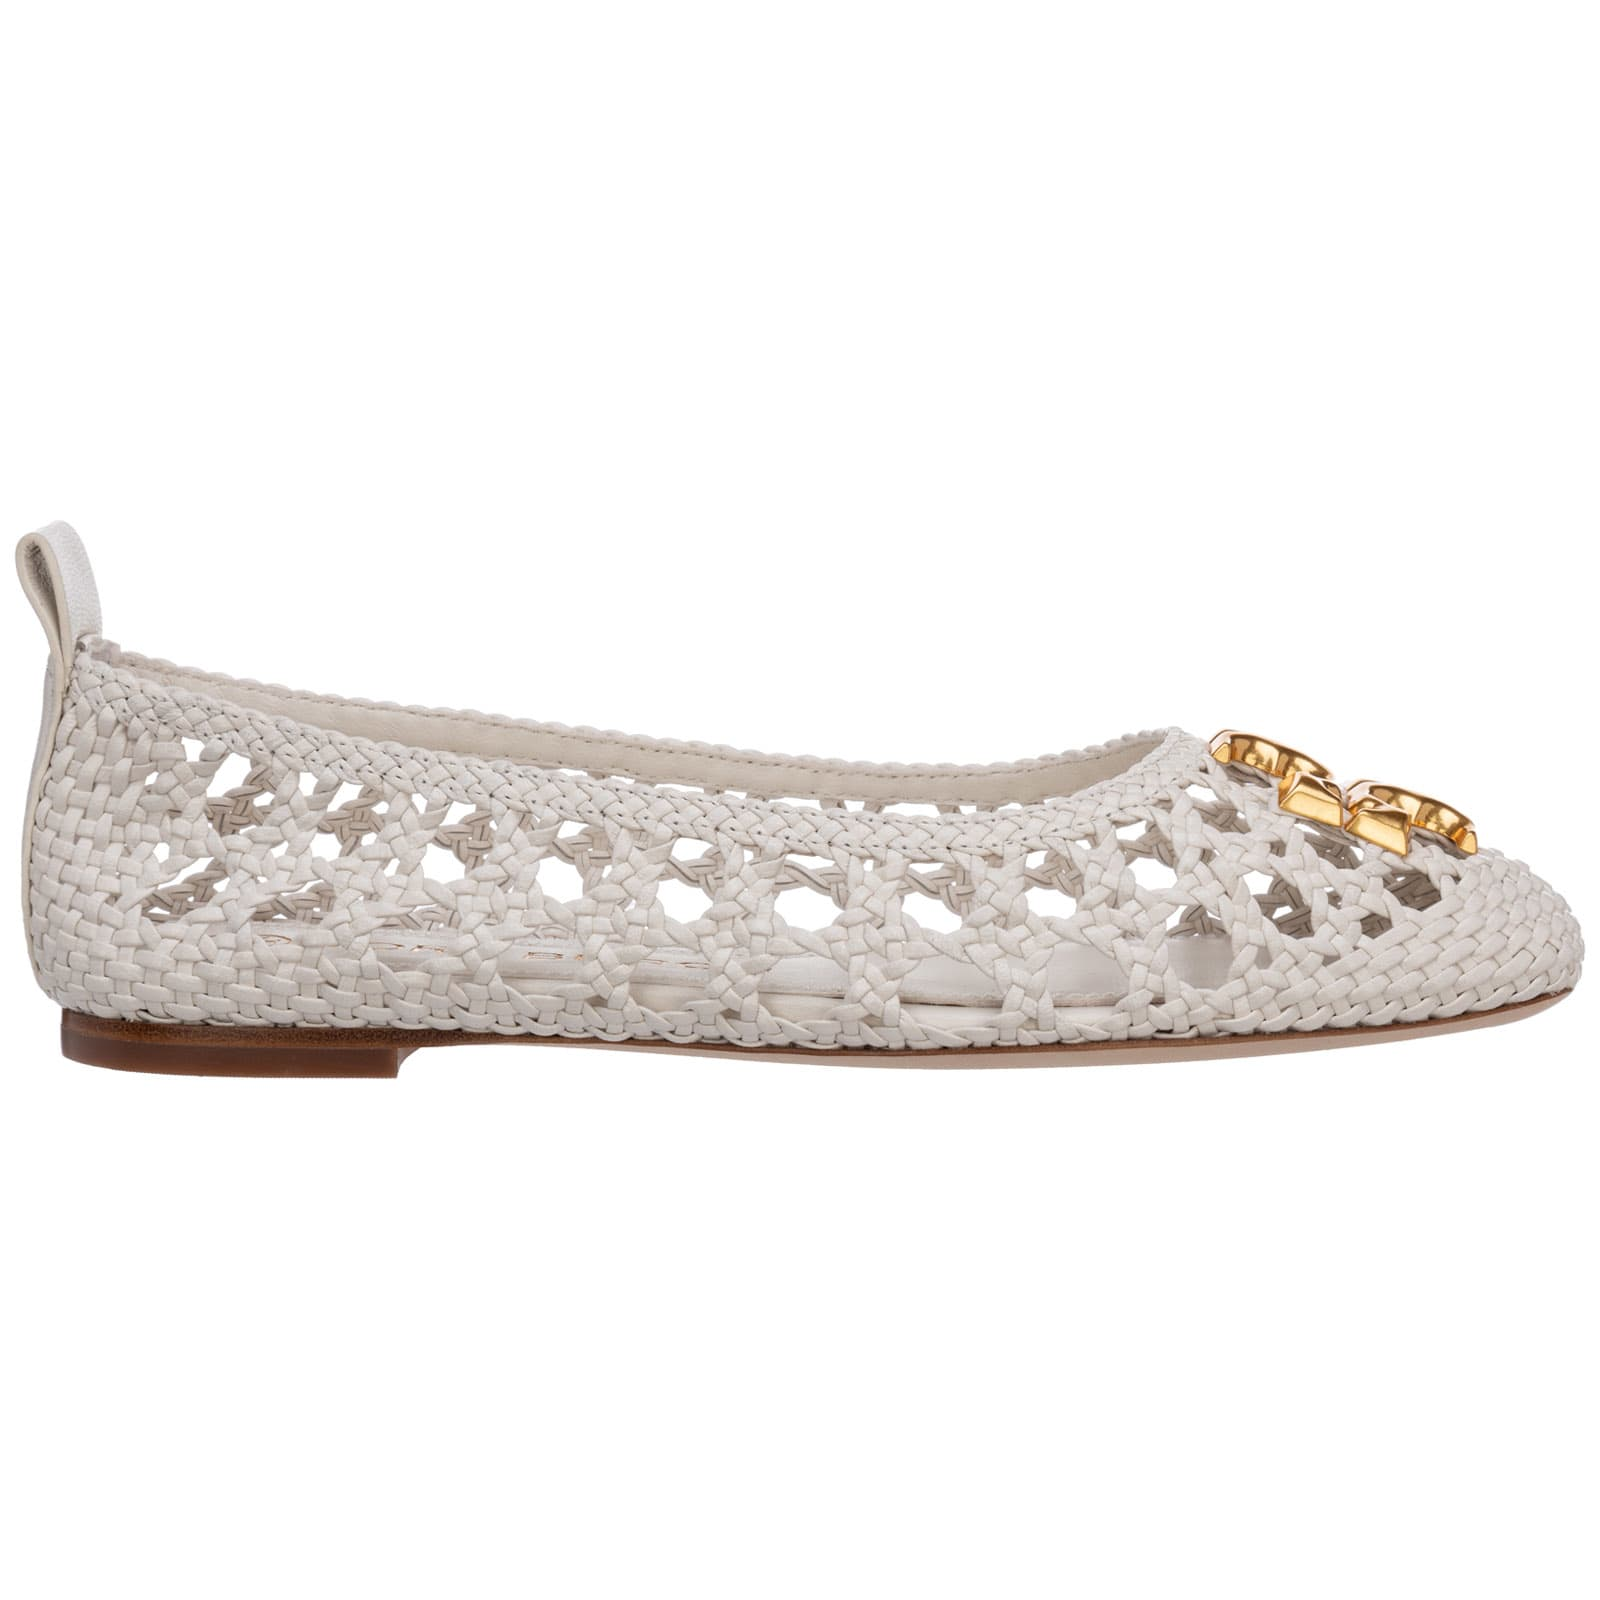 Buy Tory Burch Eleanor Ballet Pumps online, shop Tory Burch shoes with free shipping